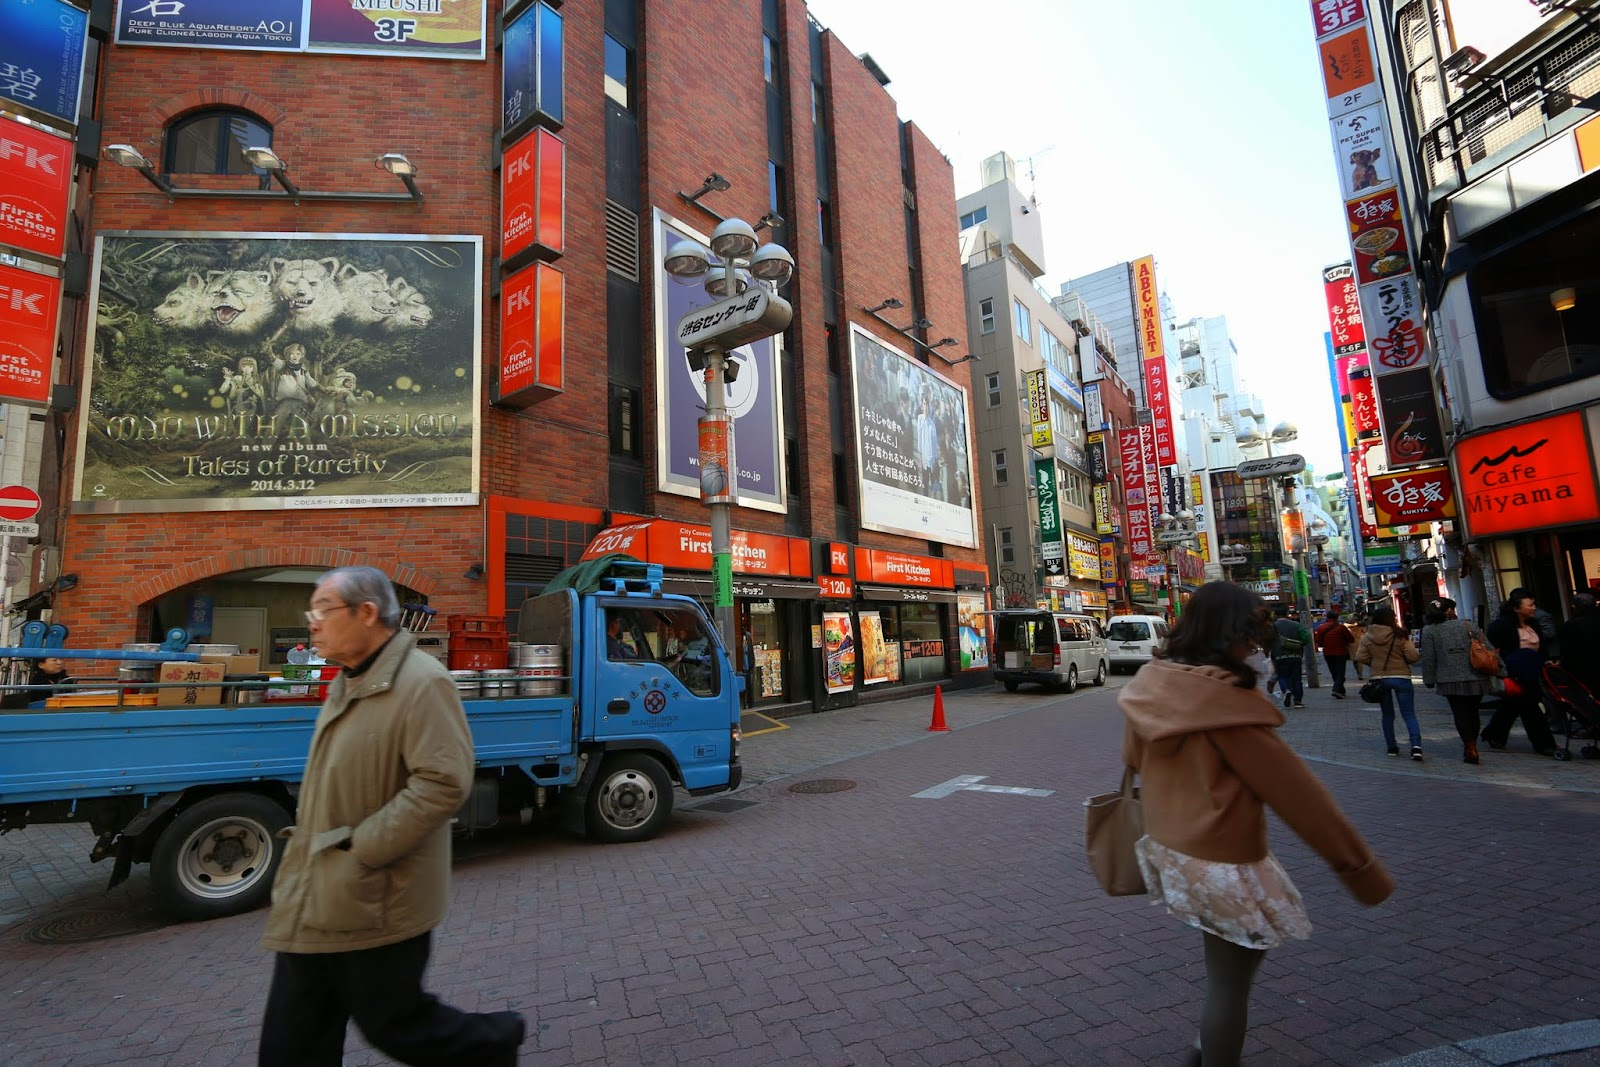 There are many cafes, restaurants and boutique stores along Center Gai in Shibuya, Tokyo, Japan